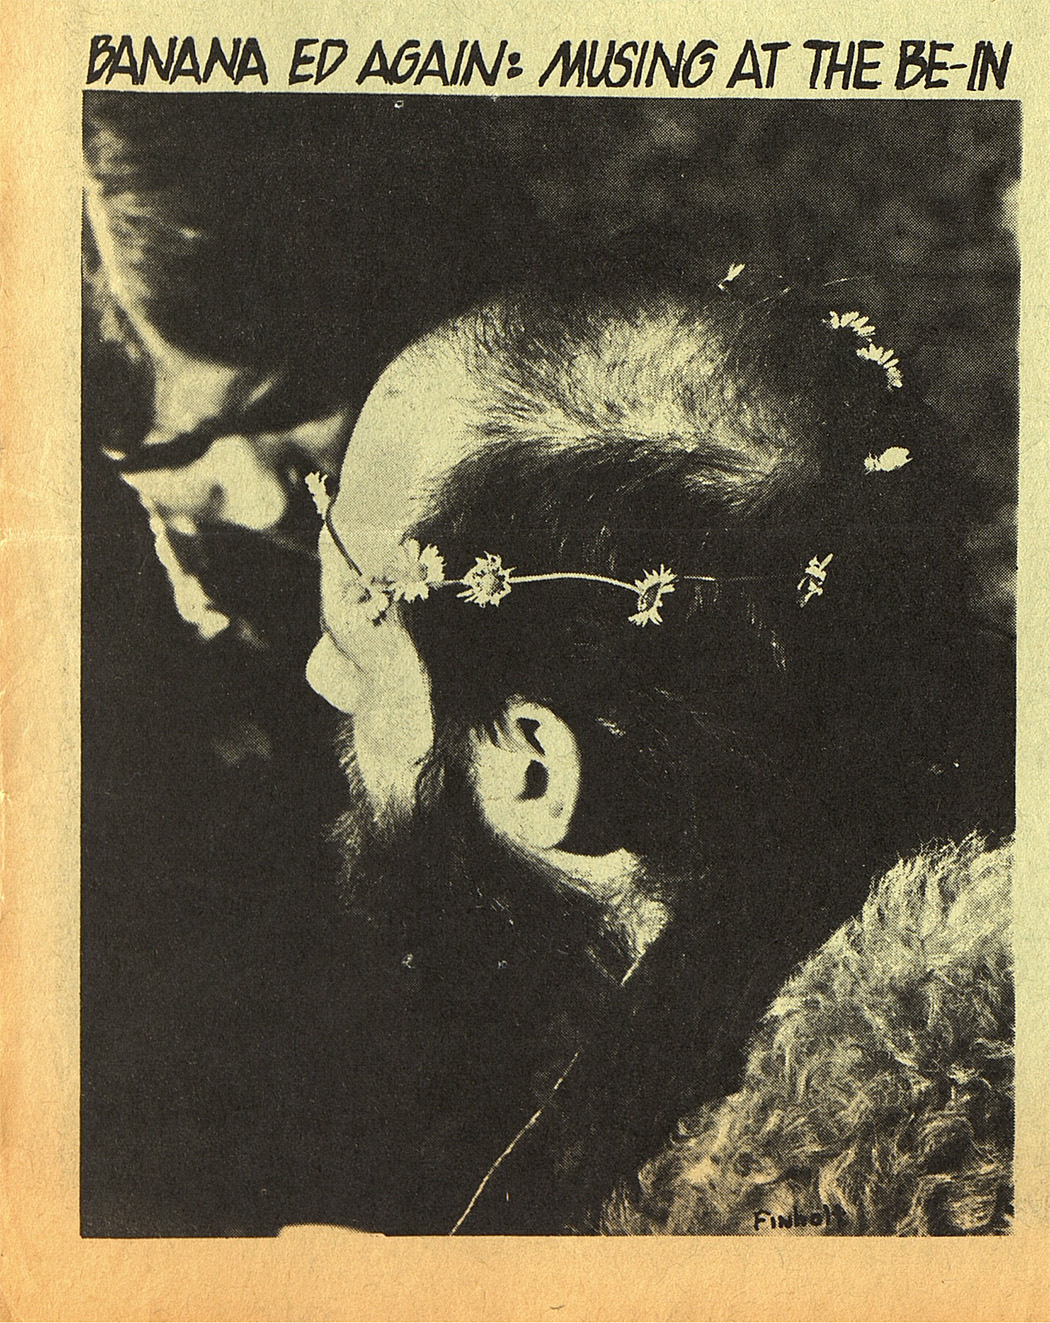 From page 8 of the April 13, 1967 issue of Helix